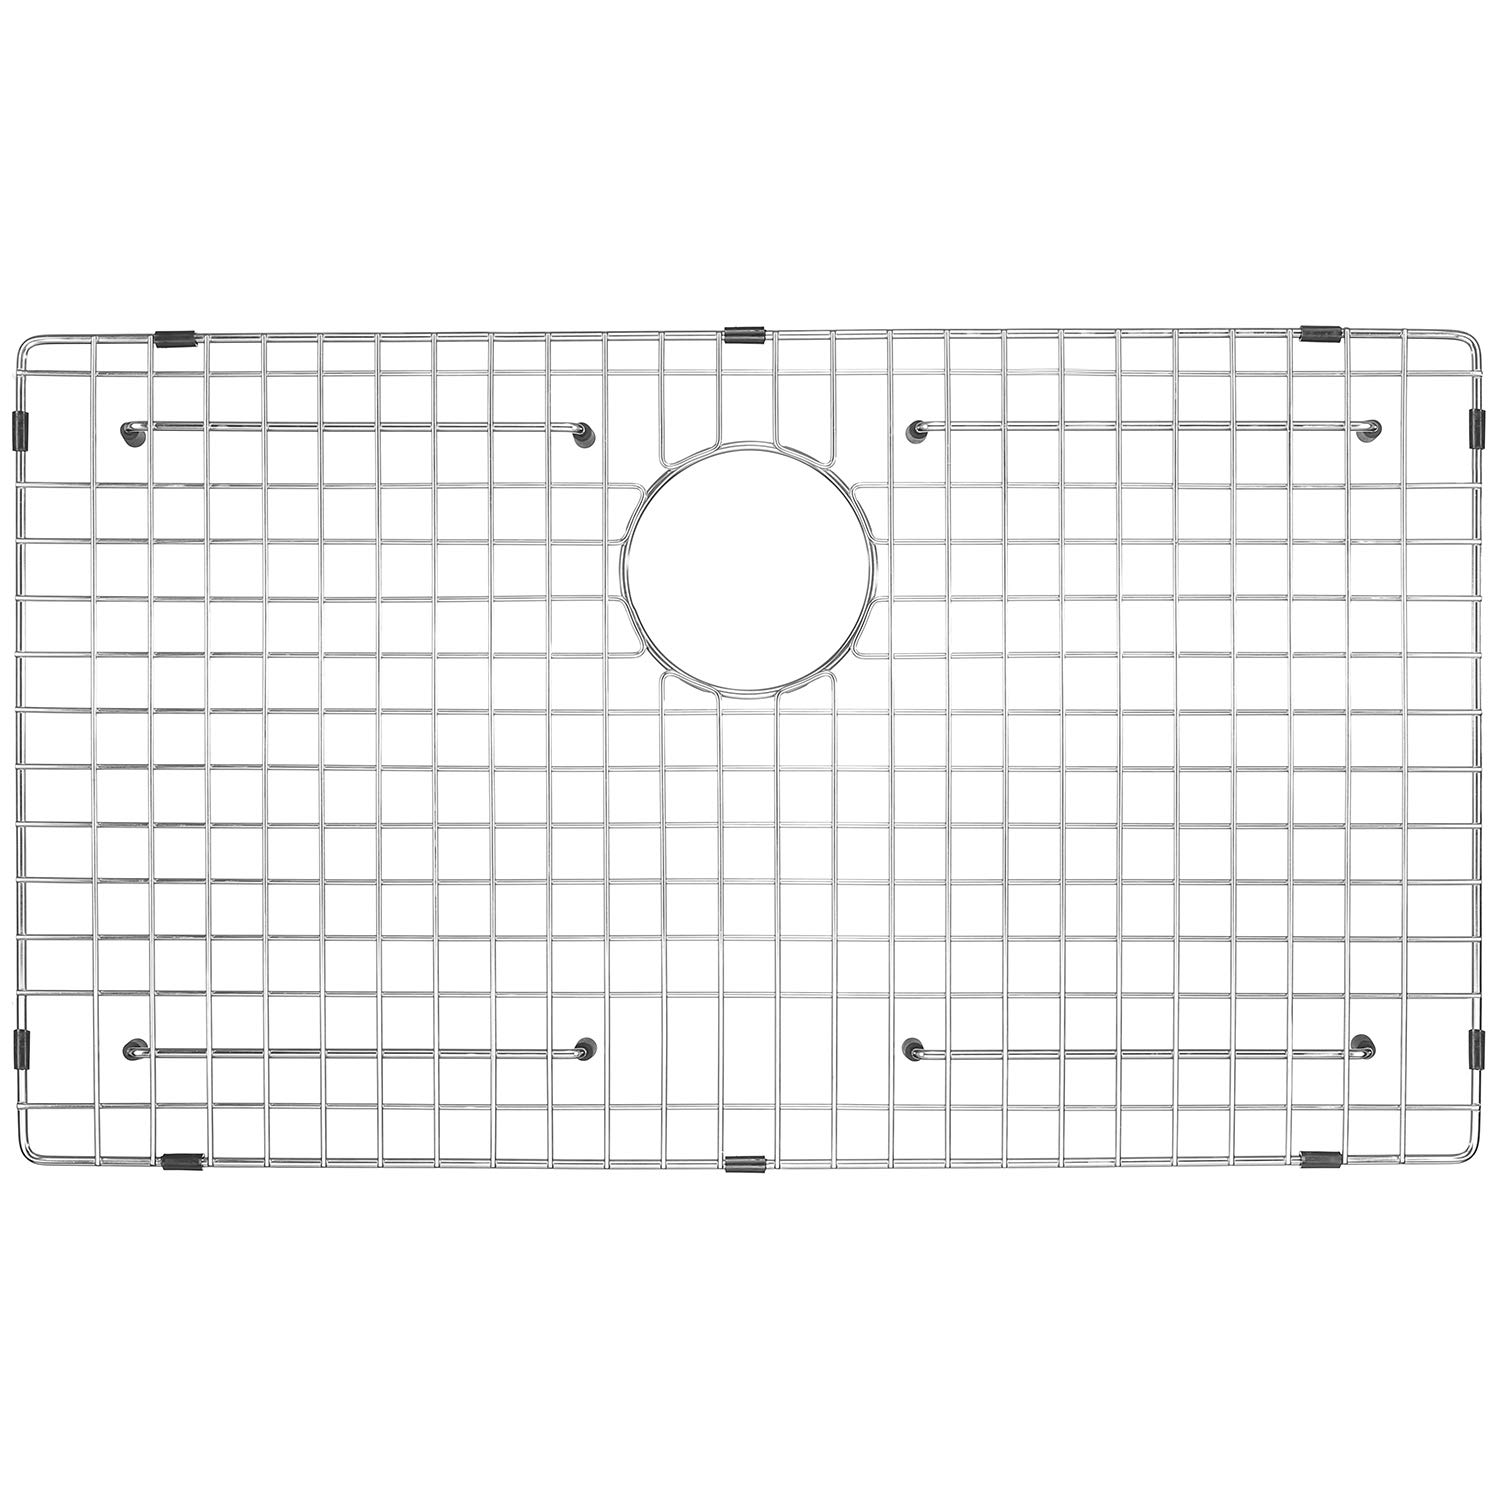 Serene Valley Sink Protector and Kitchen Sink Bottom Grid NDG3321, 304 Premium Stainless Steel, dim 29 11/16'' x 15 11/16''